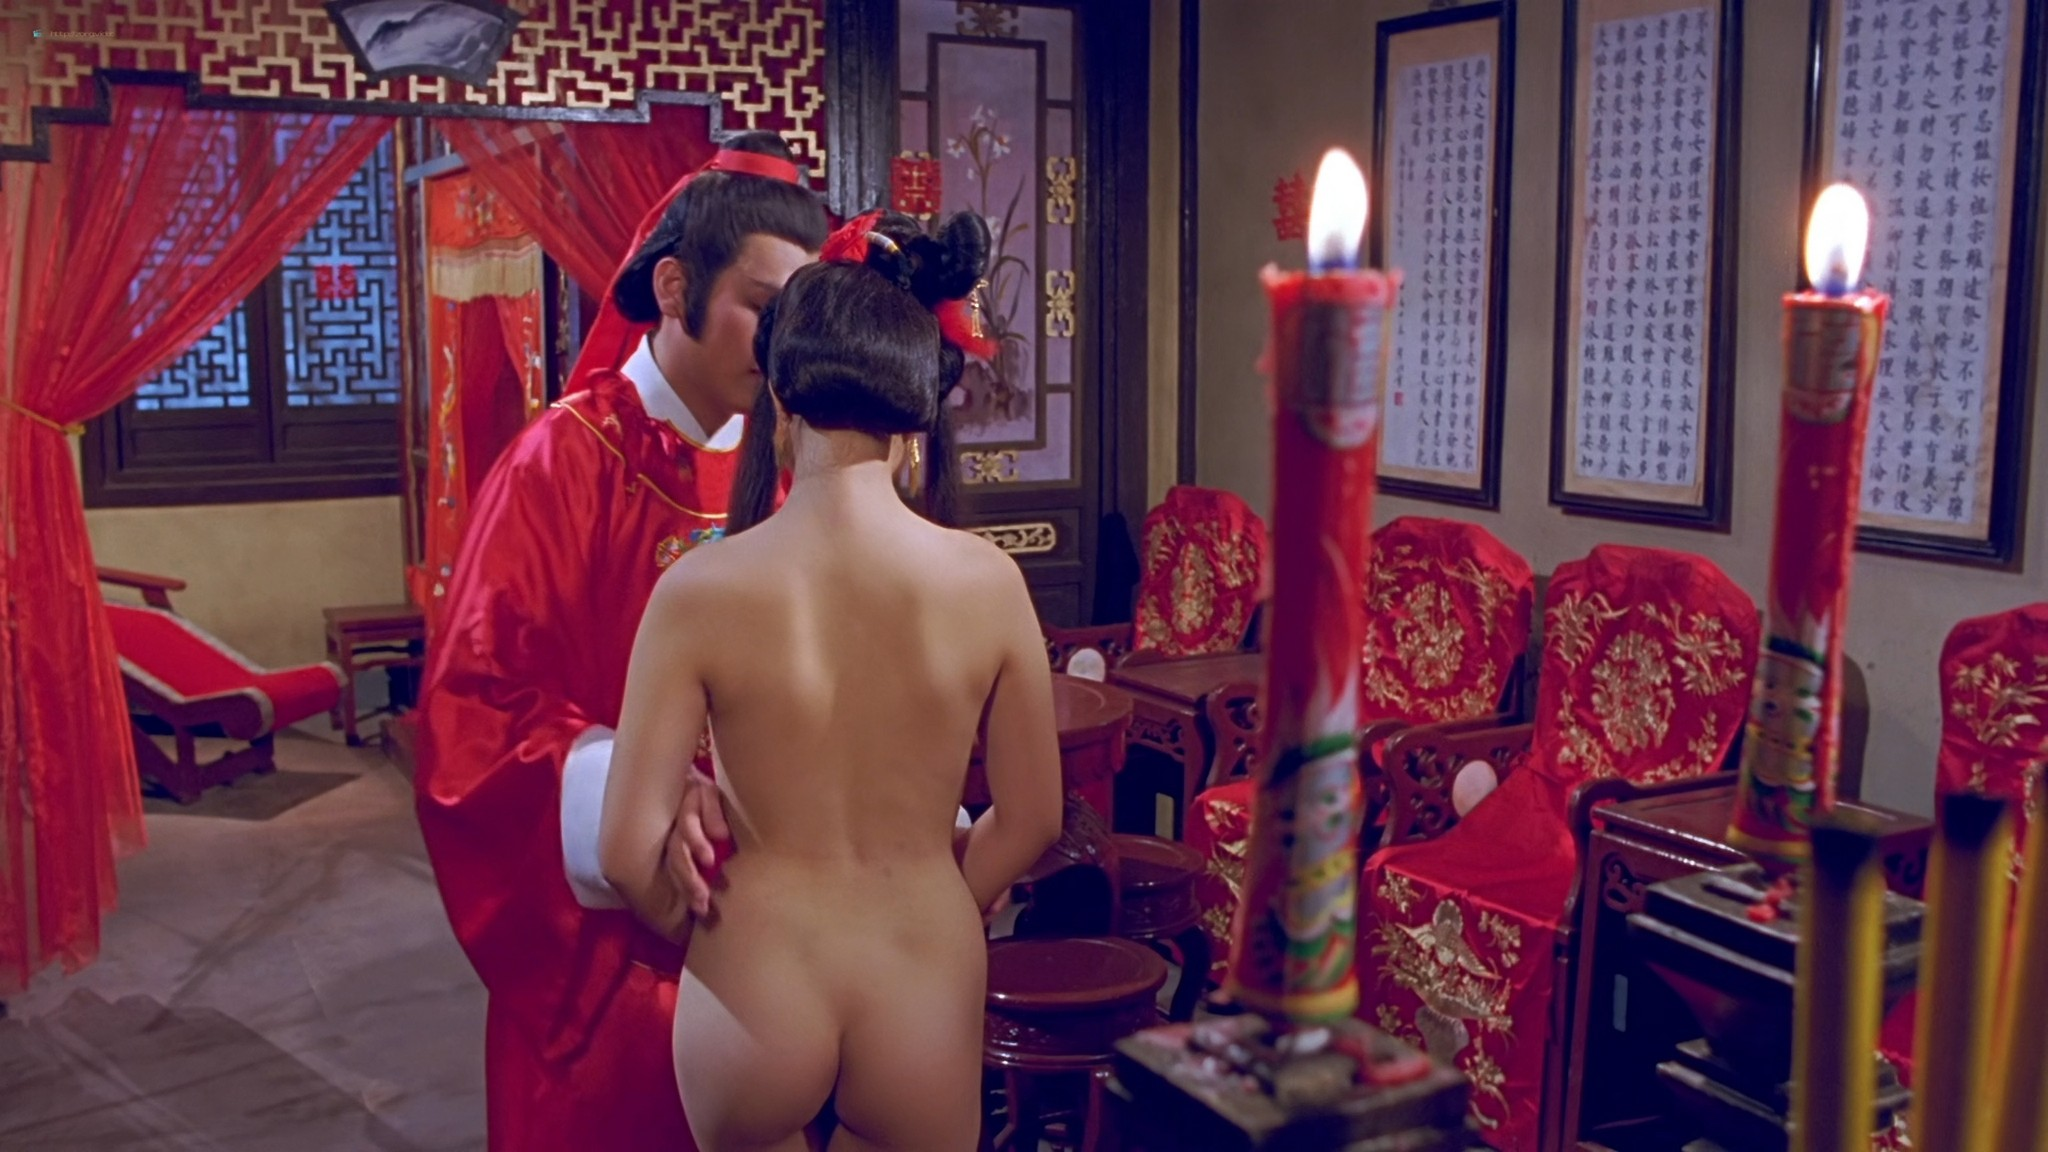 Yuen Man Cheng nude full frontal Chin Fei Lam hot sex The Carnal Sutra Mat HK 1987 HD 1080p BluRay REMUX 003